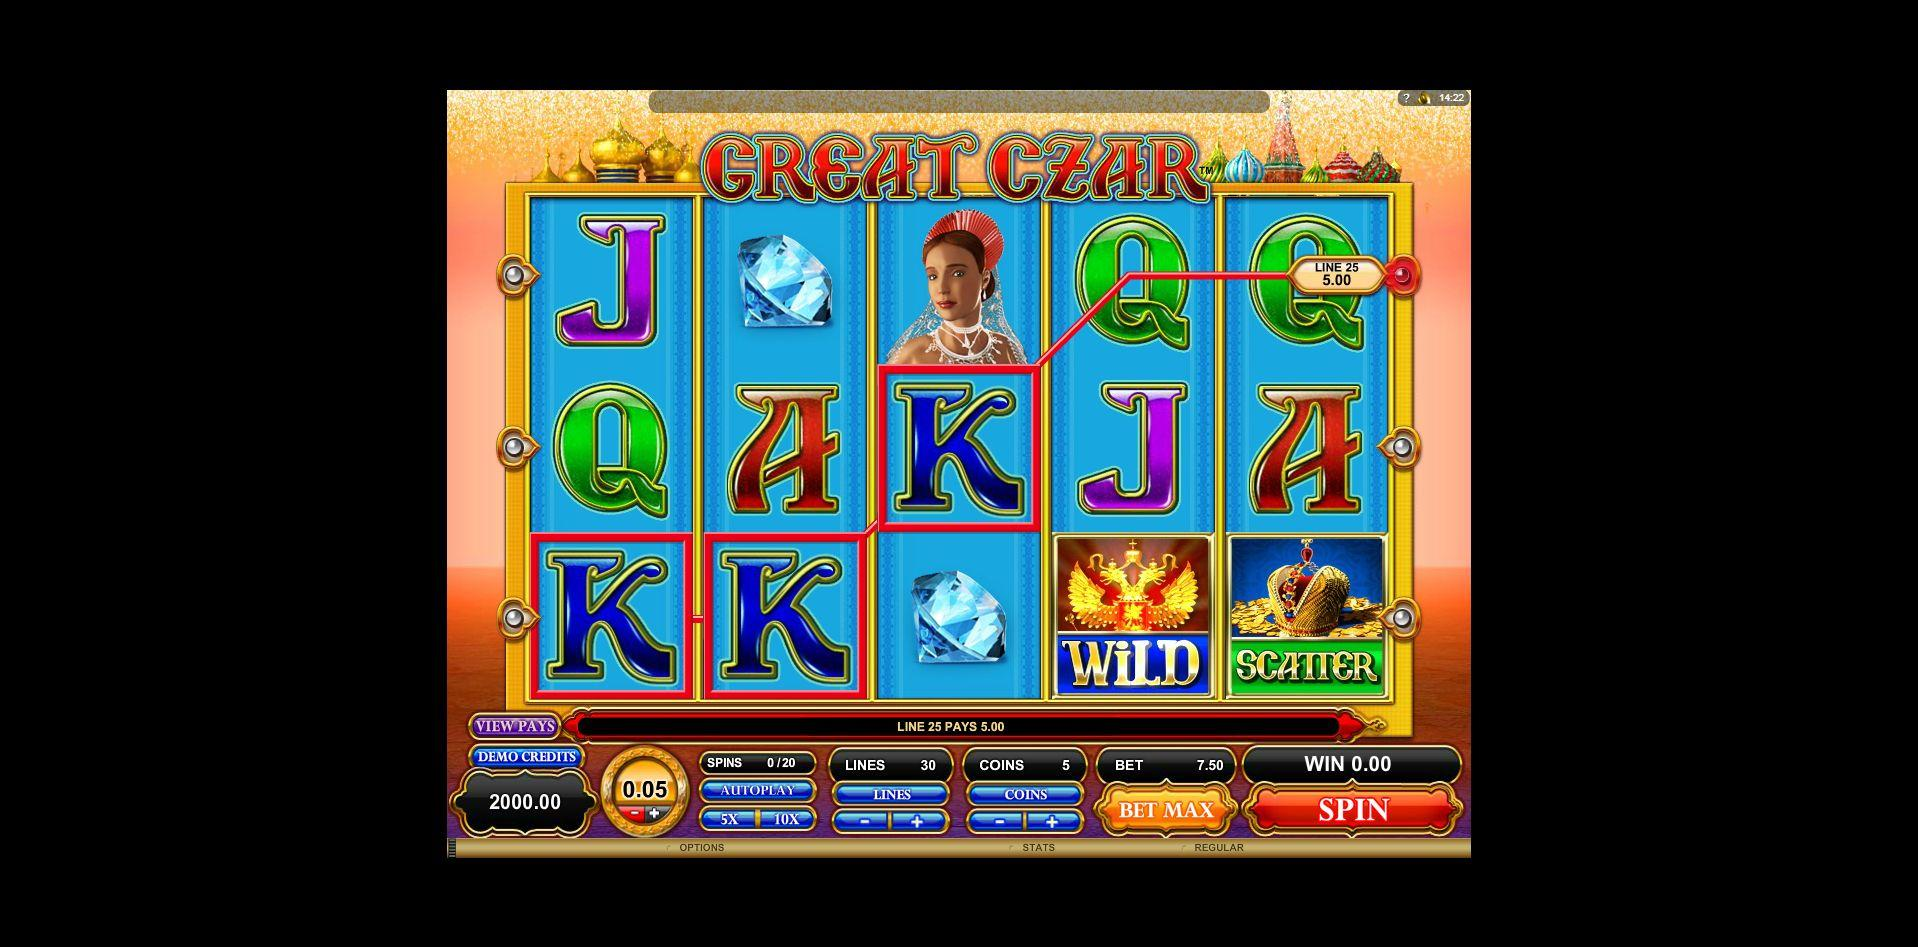 Great Czar Slot - Play the Microgaming Casino Game for Free